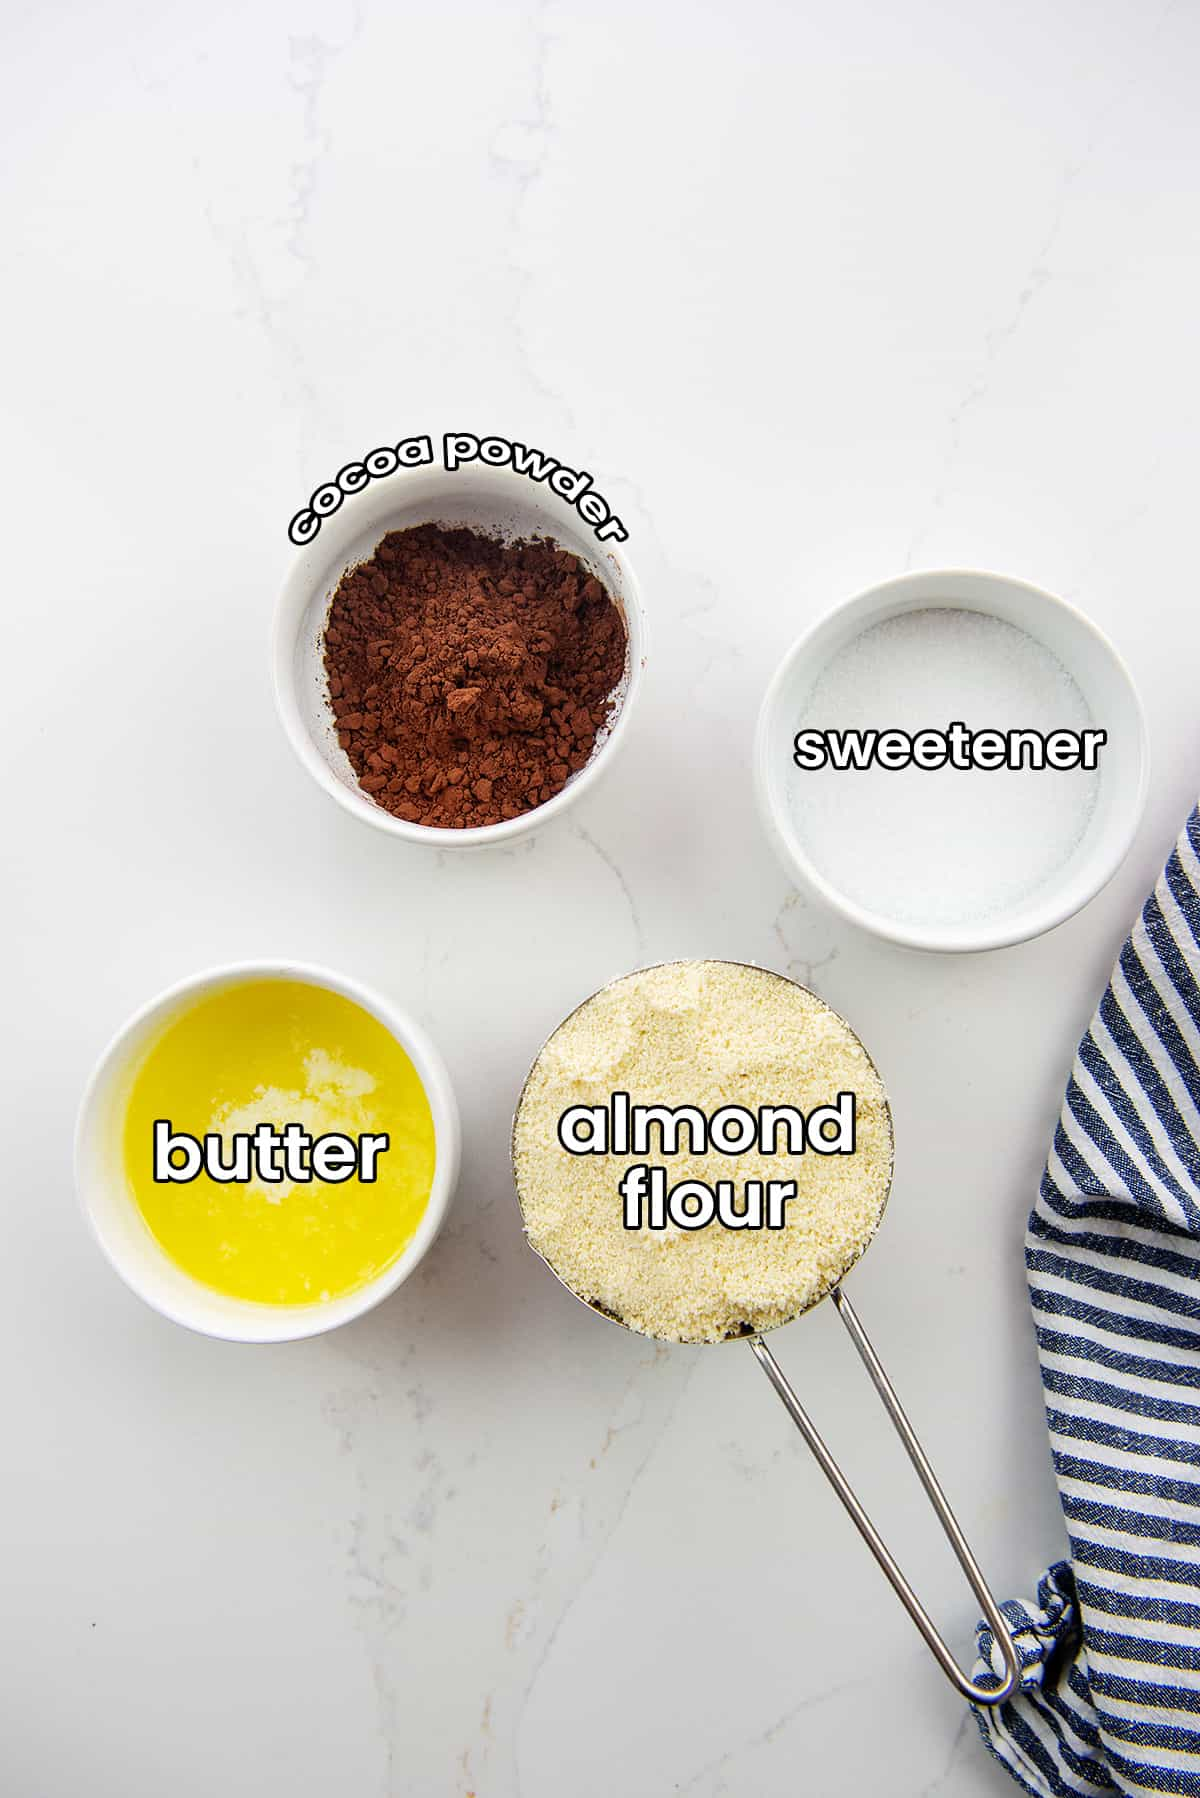 ingredients for keto chocolate crust.